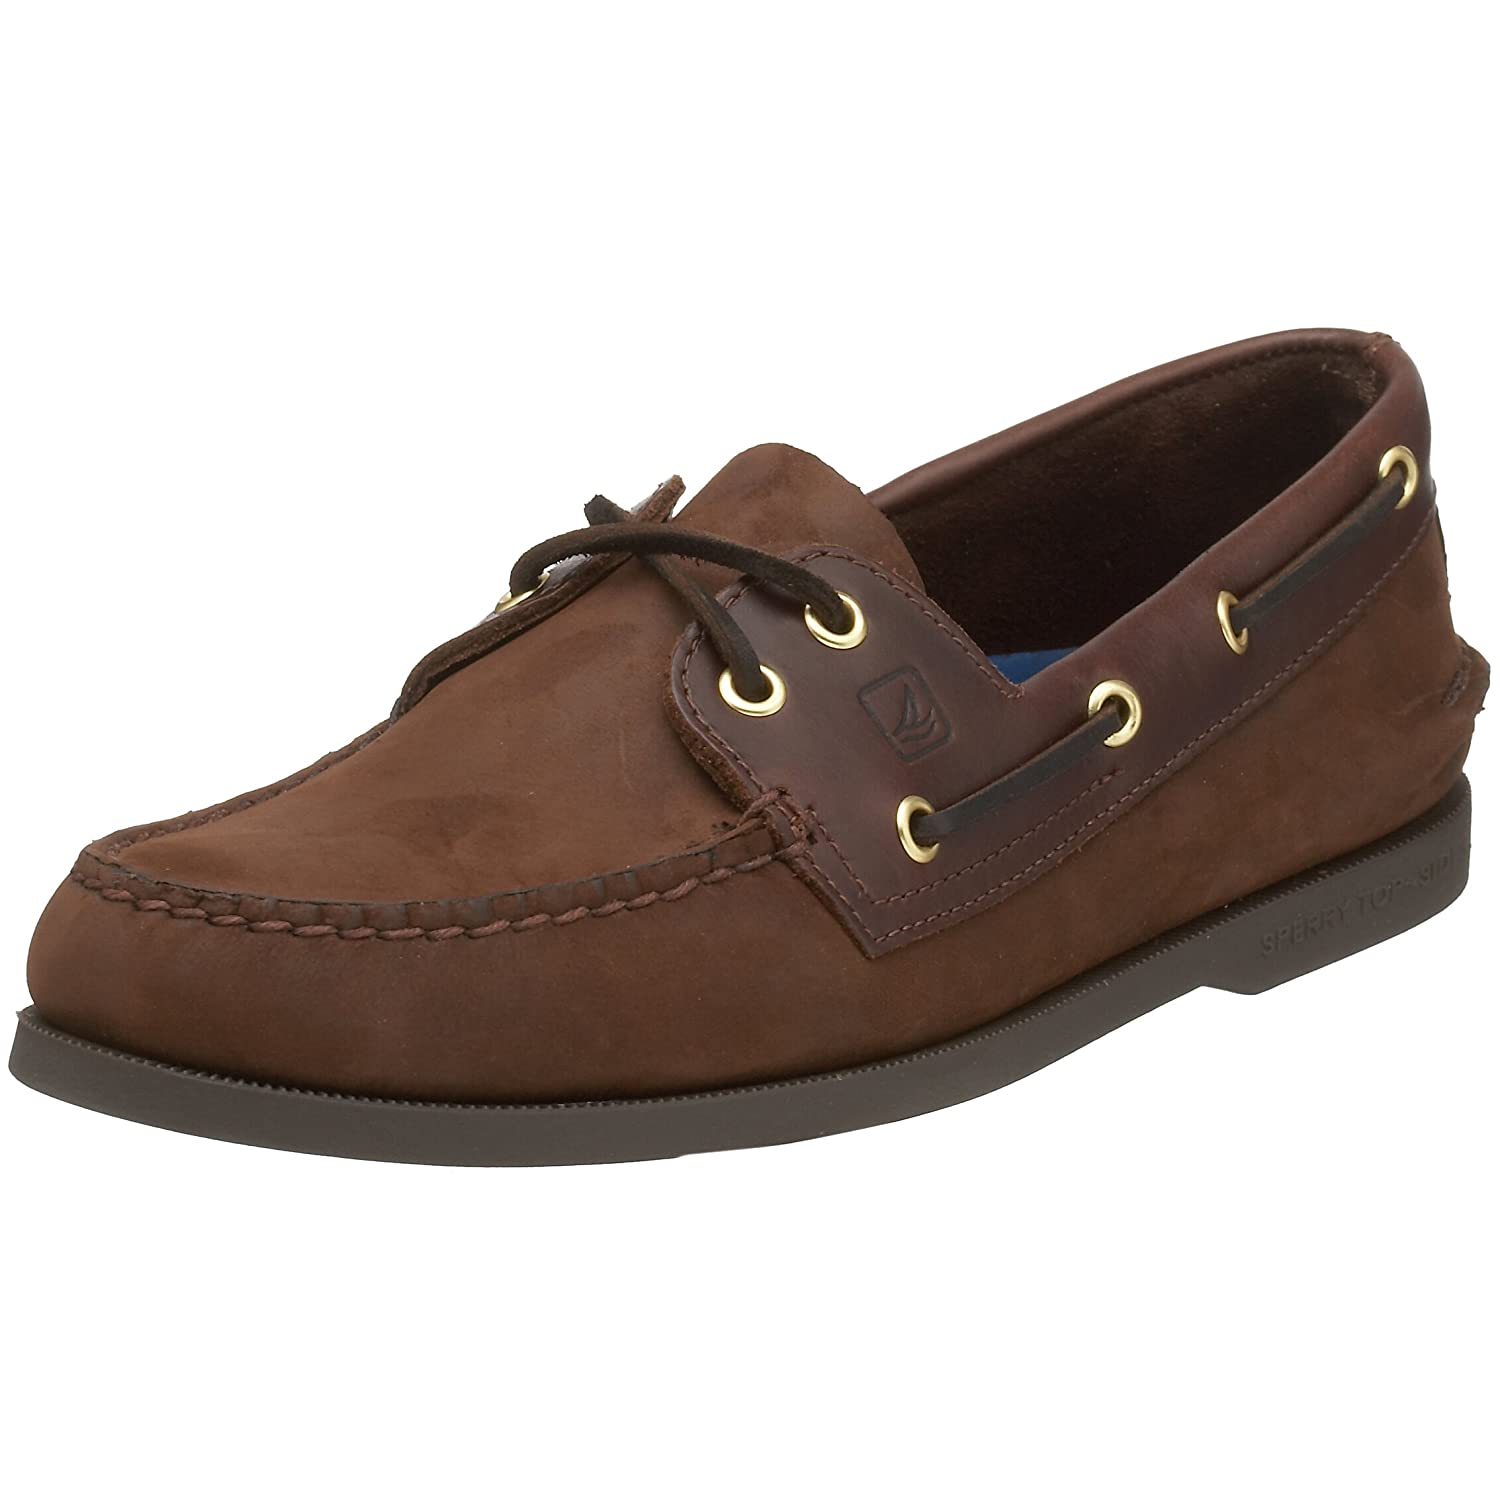 Sperry Top-Sider Mens A/O Boat Shoe  6 D(M) US|Brown/Buck Brown